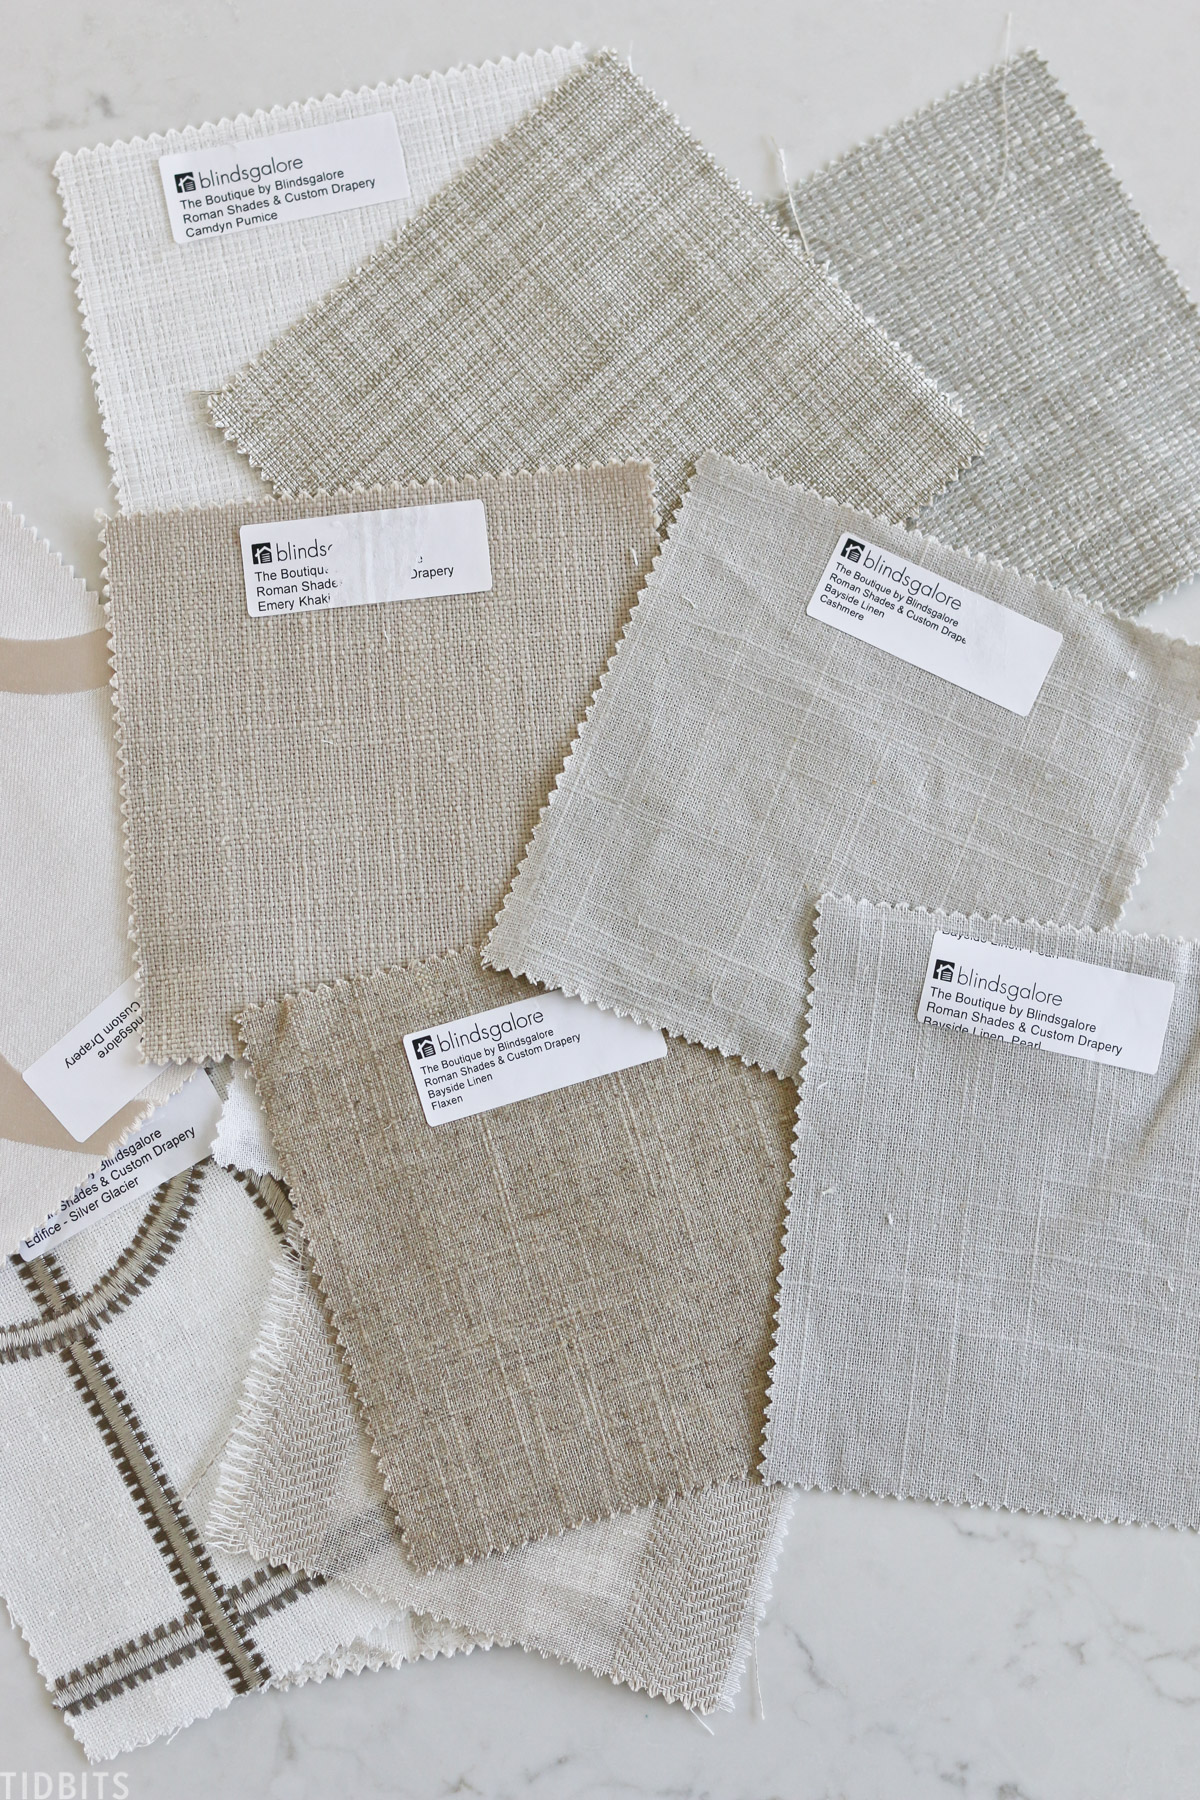 samples of window shades